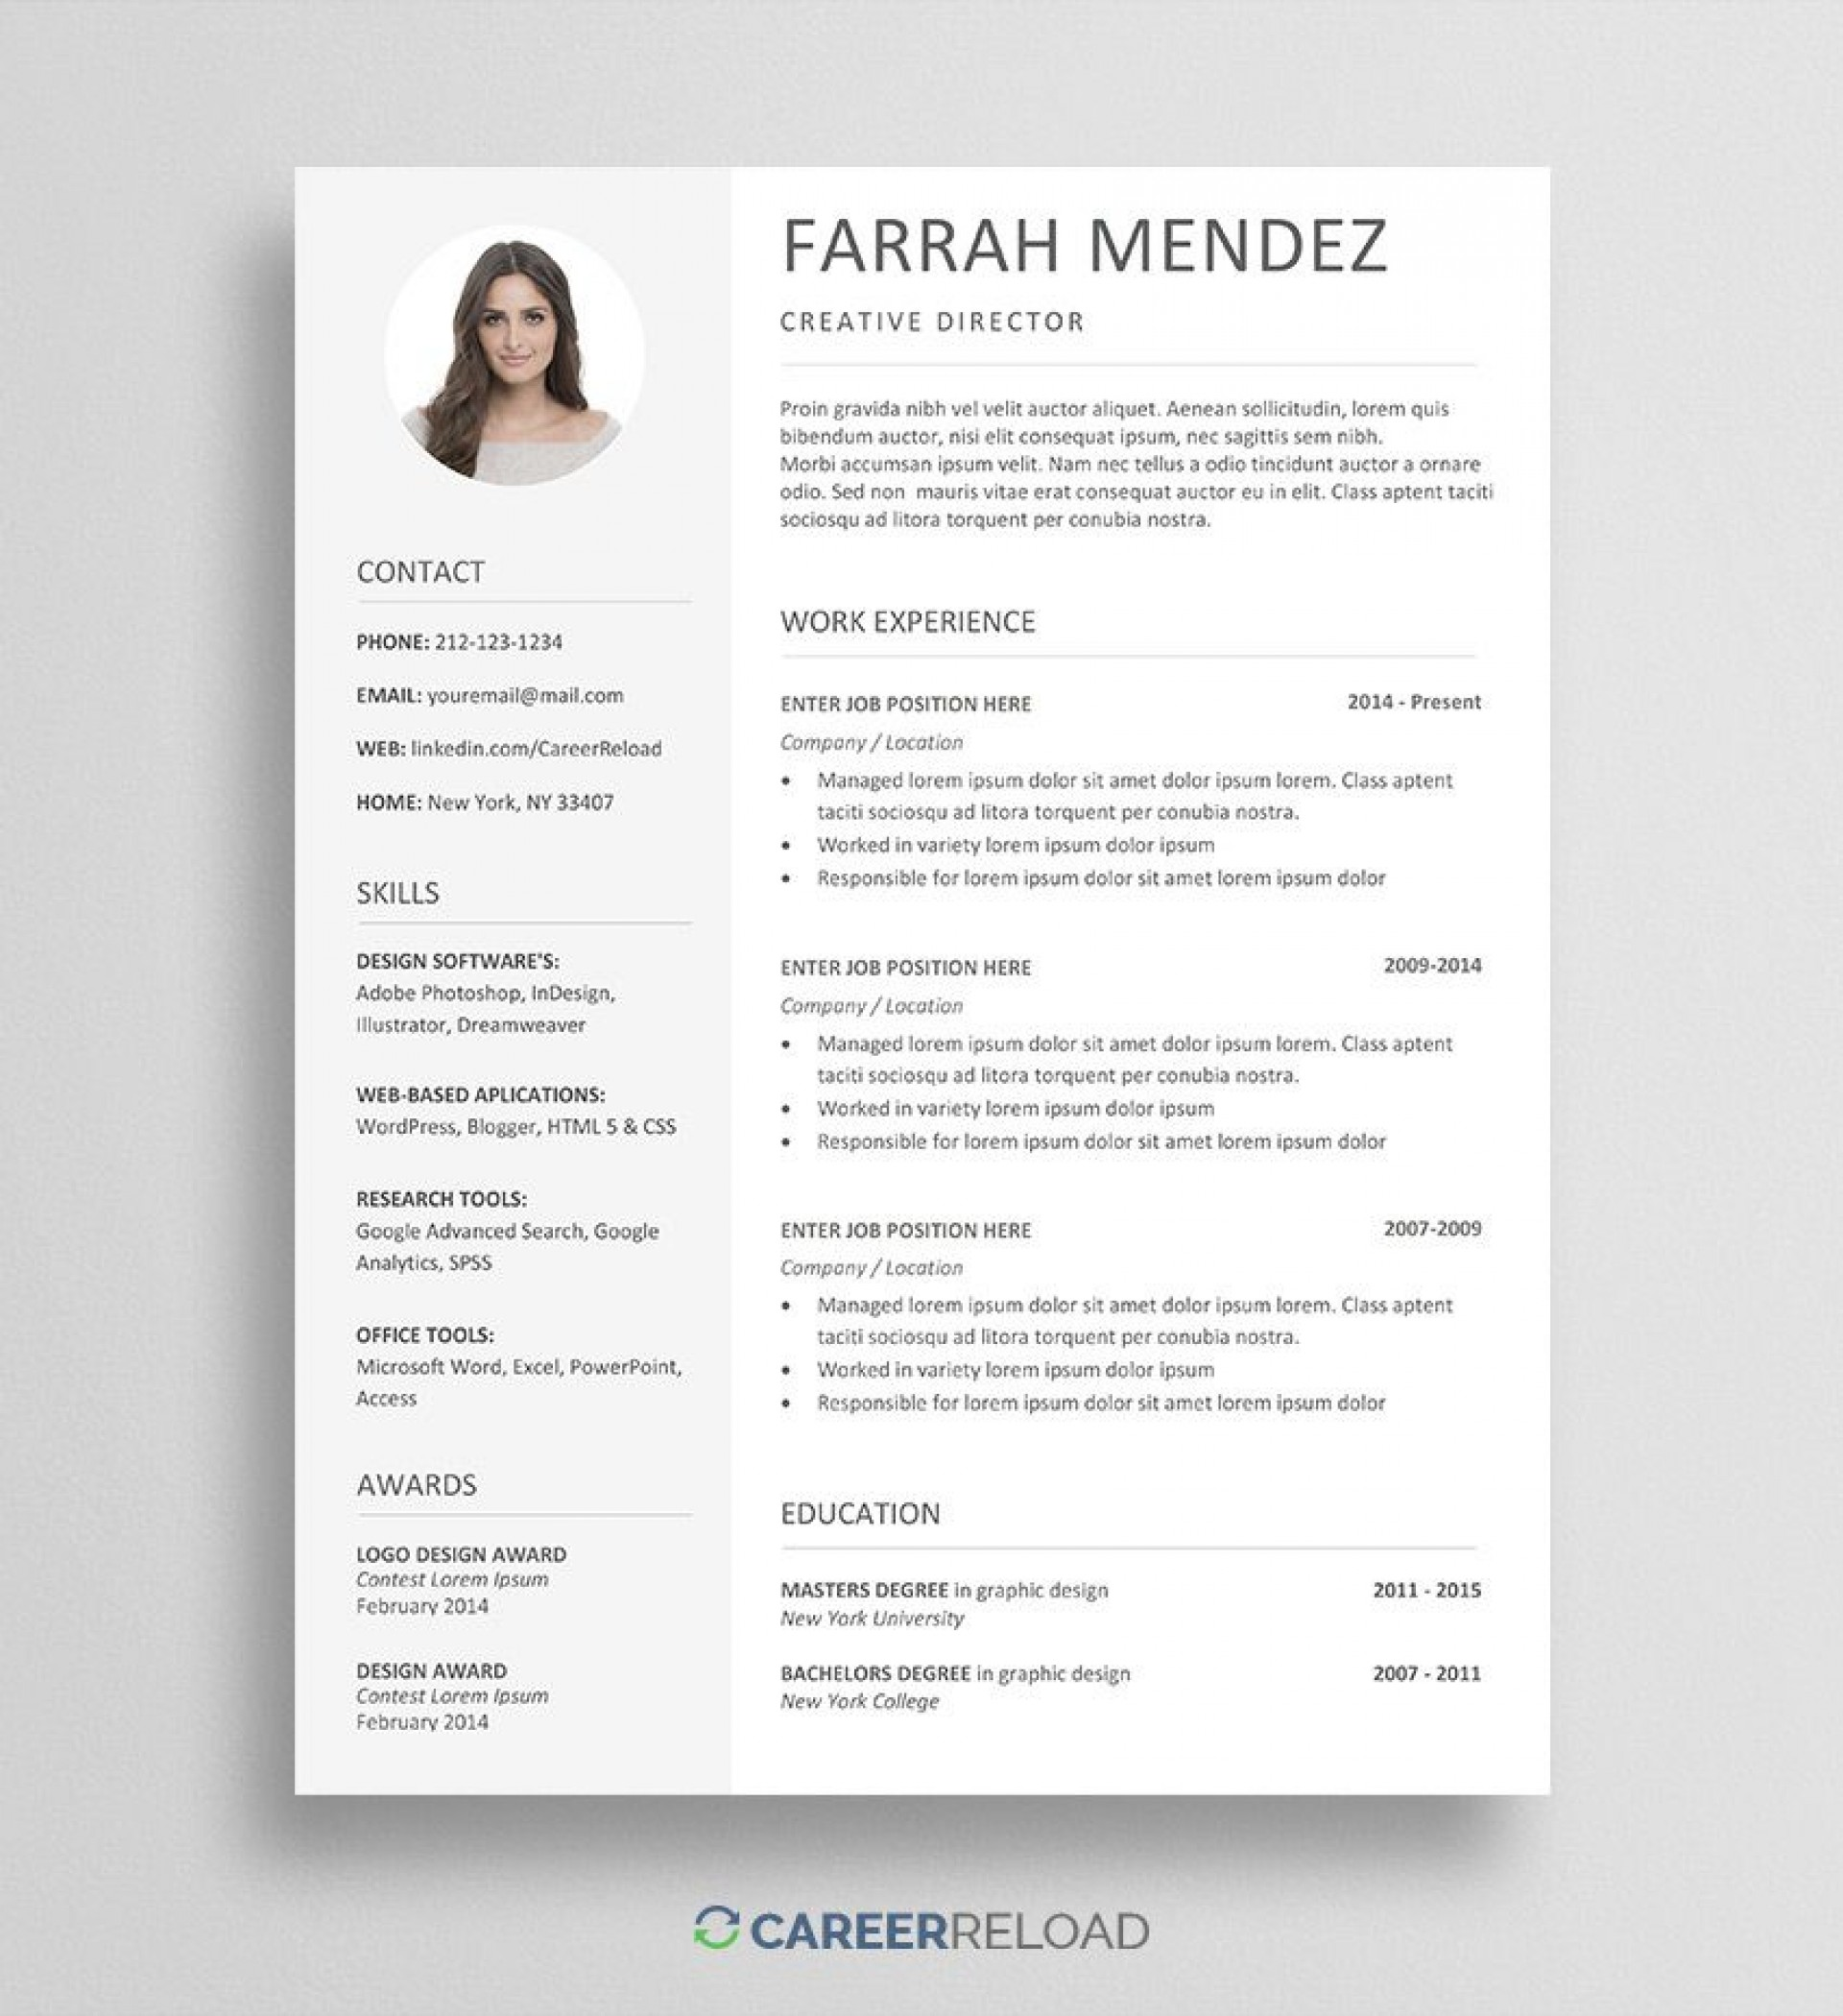 005 Unusual Resume Template Free Word Download Photo  Cv With Malaysia Australia1920